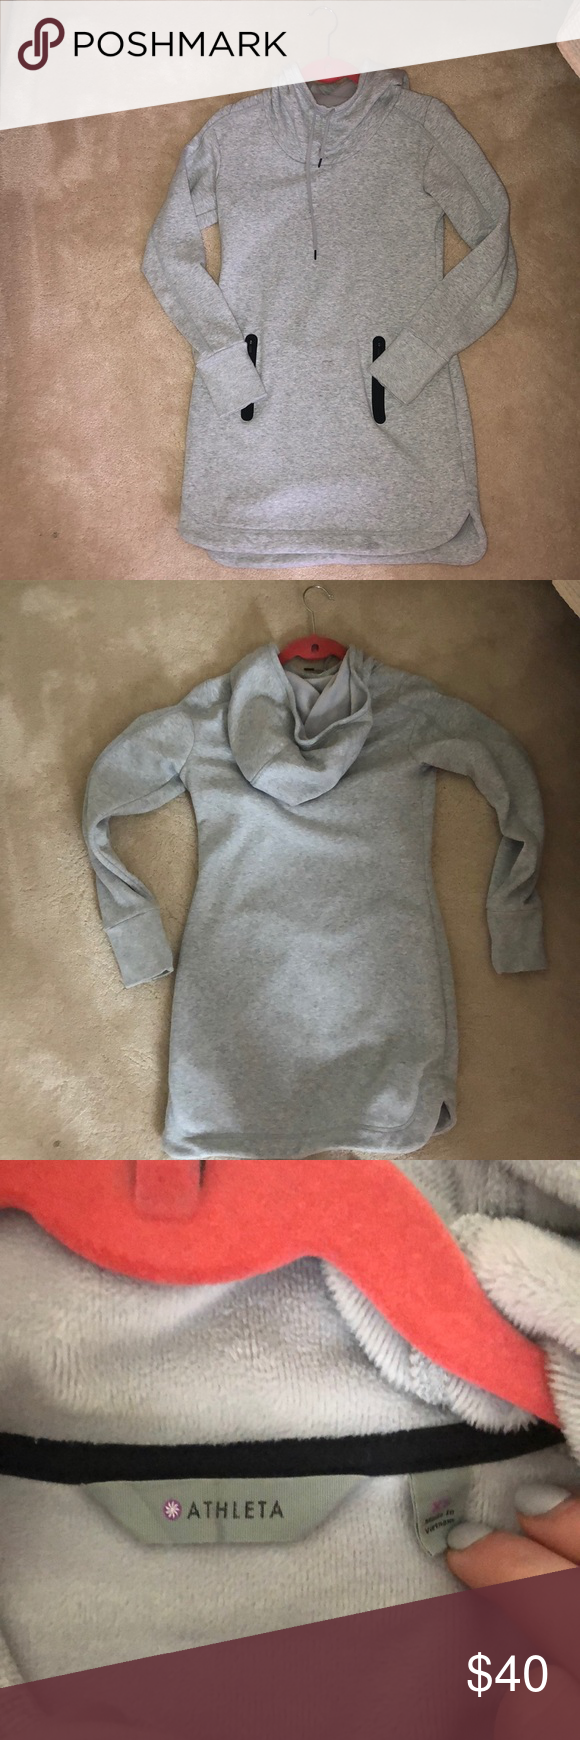 5ded80554c Athleta Hayes Hoodie Dress Excellent condition. Cowl neck